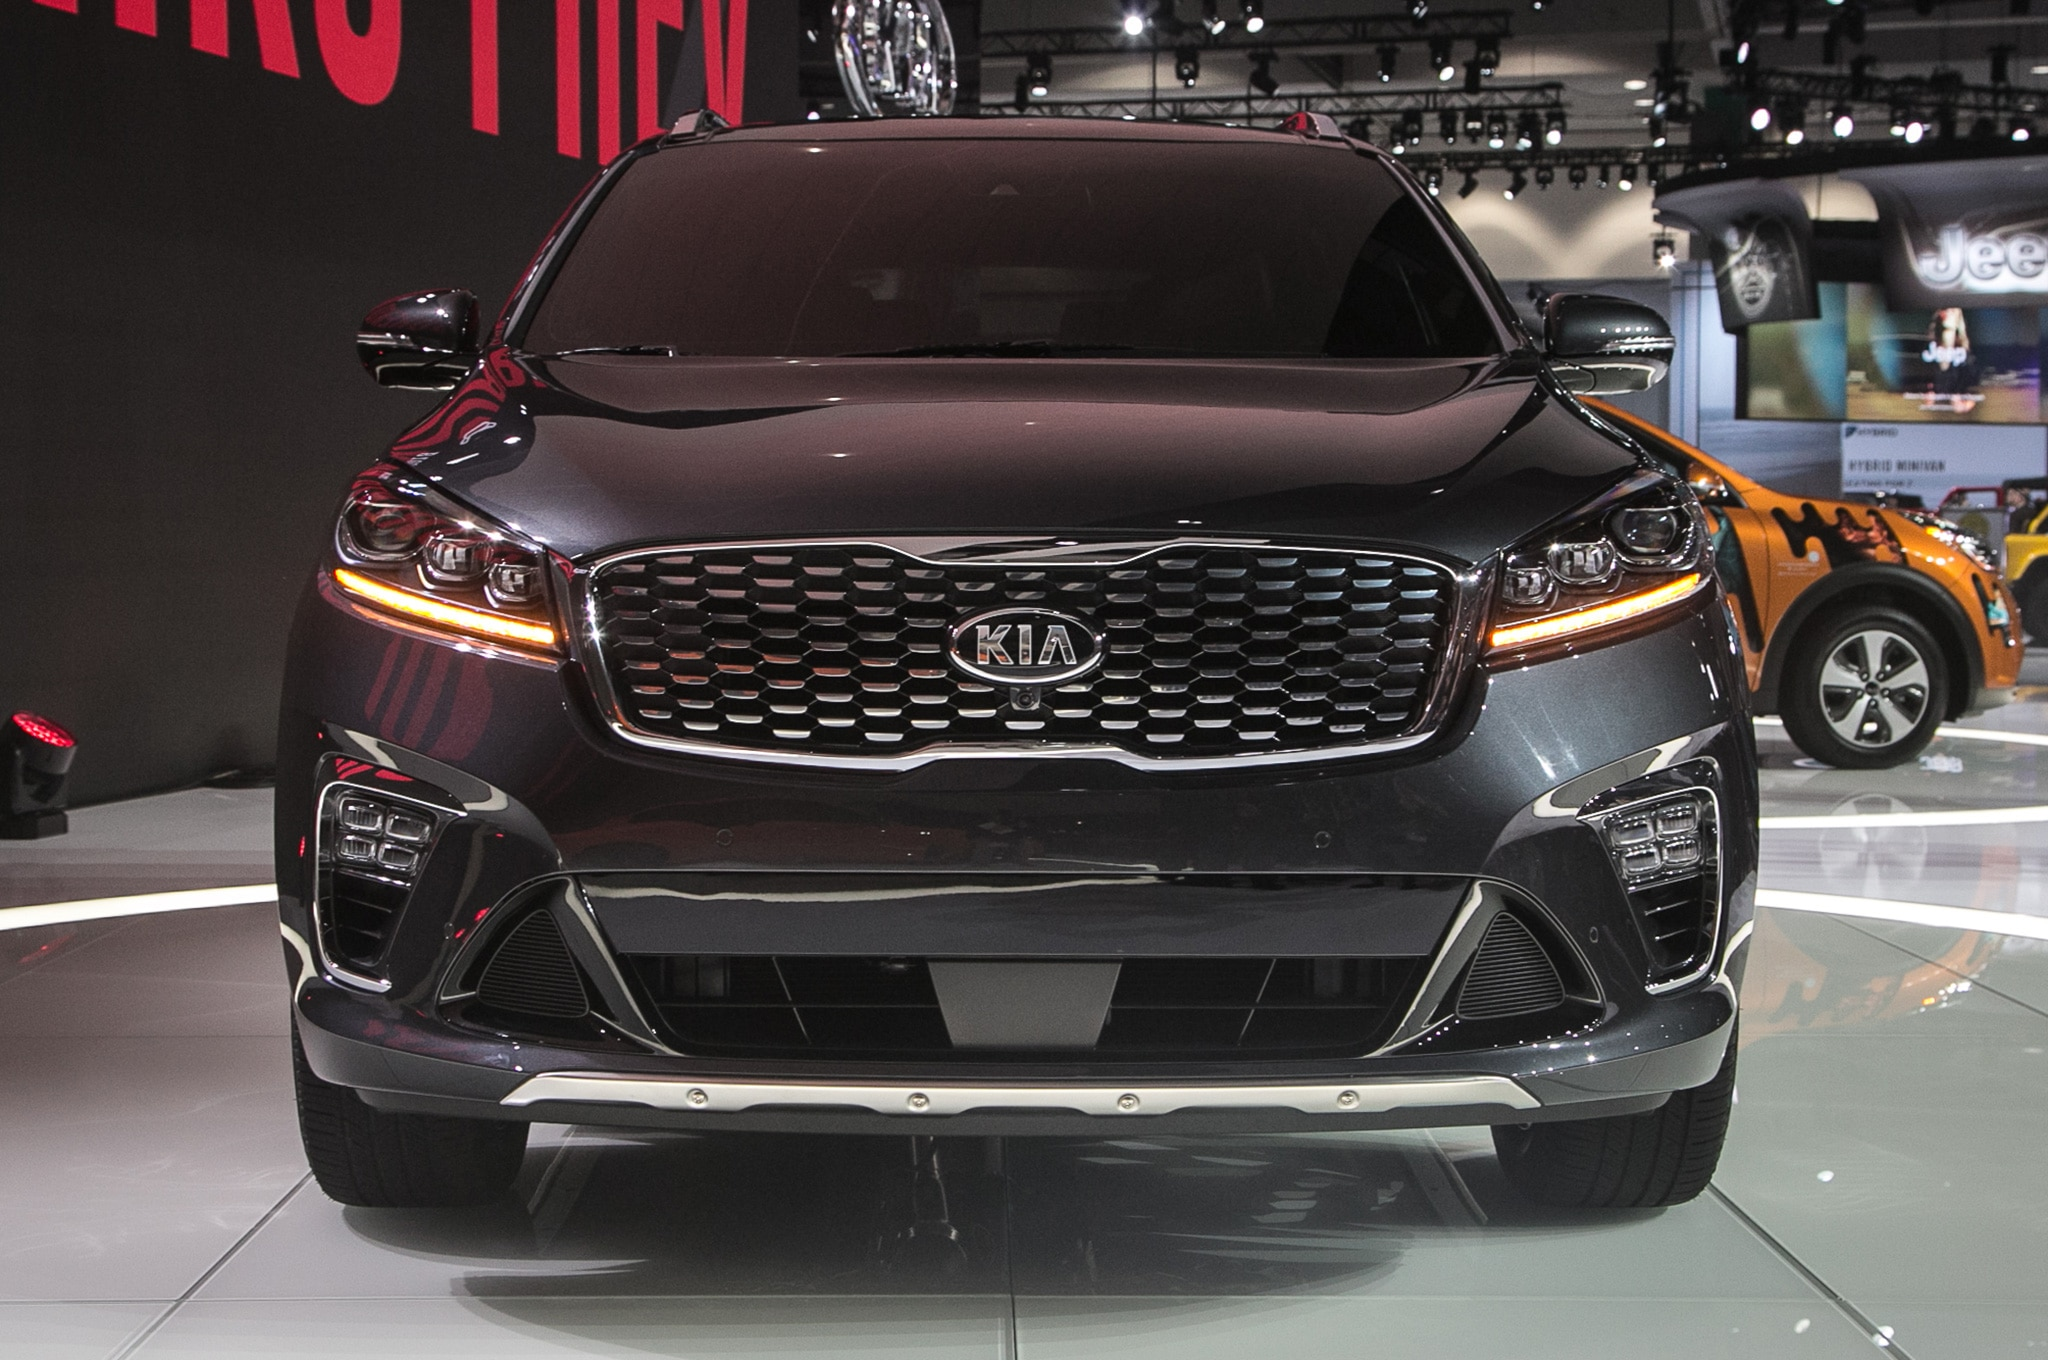 kia sorento hybrid concept date specs release lineup changes relase powertrain gets updated